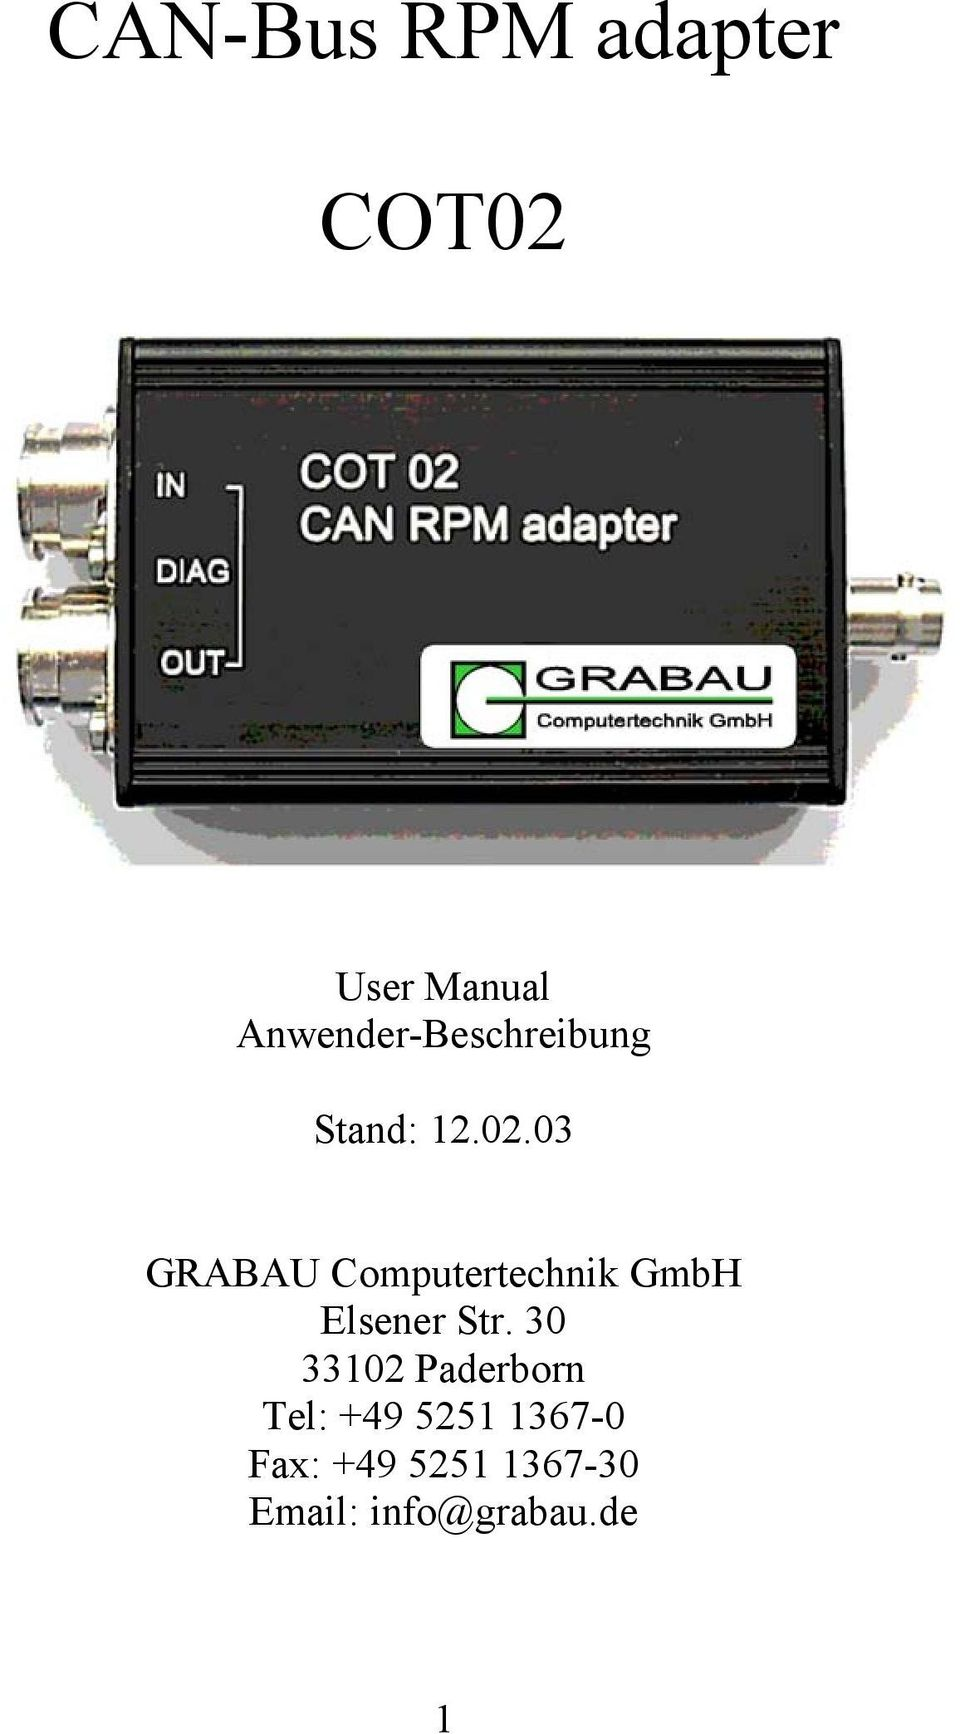 03 GRABAU Computertechnik GmbH Elsener Str.